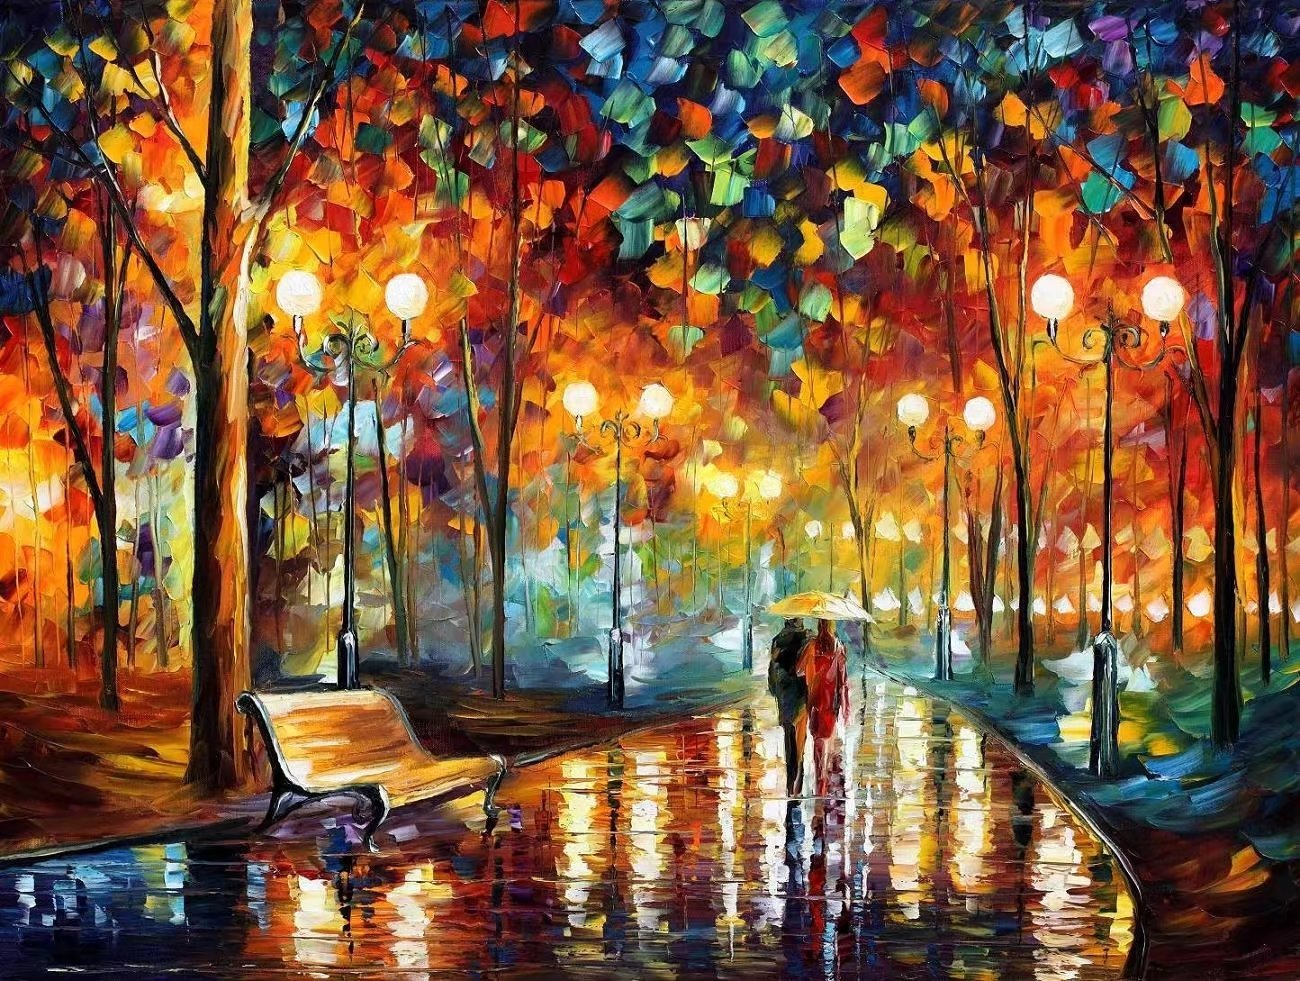 Tonzom Paint By Number Kits 16 x 20 inch Canvas Diy Oil Painting for Kids, Students, Adults Beginner with Brushes and Acrylic Pigment - Our Romance under Umbrella (Without Frame)